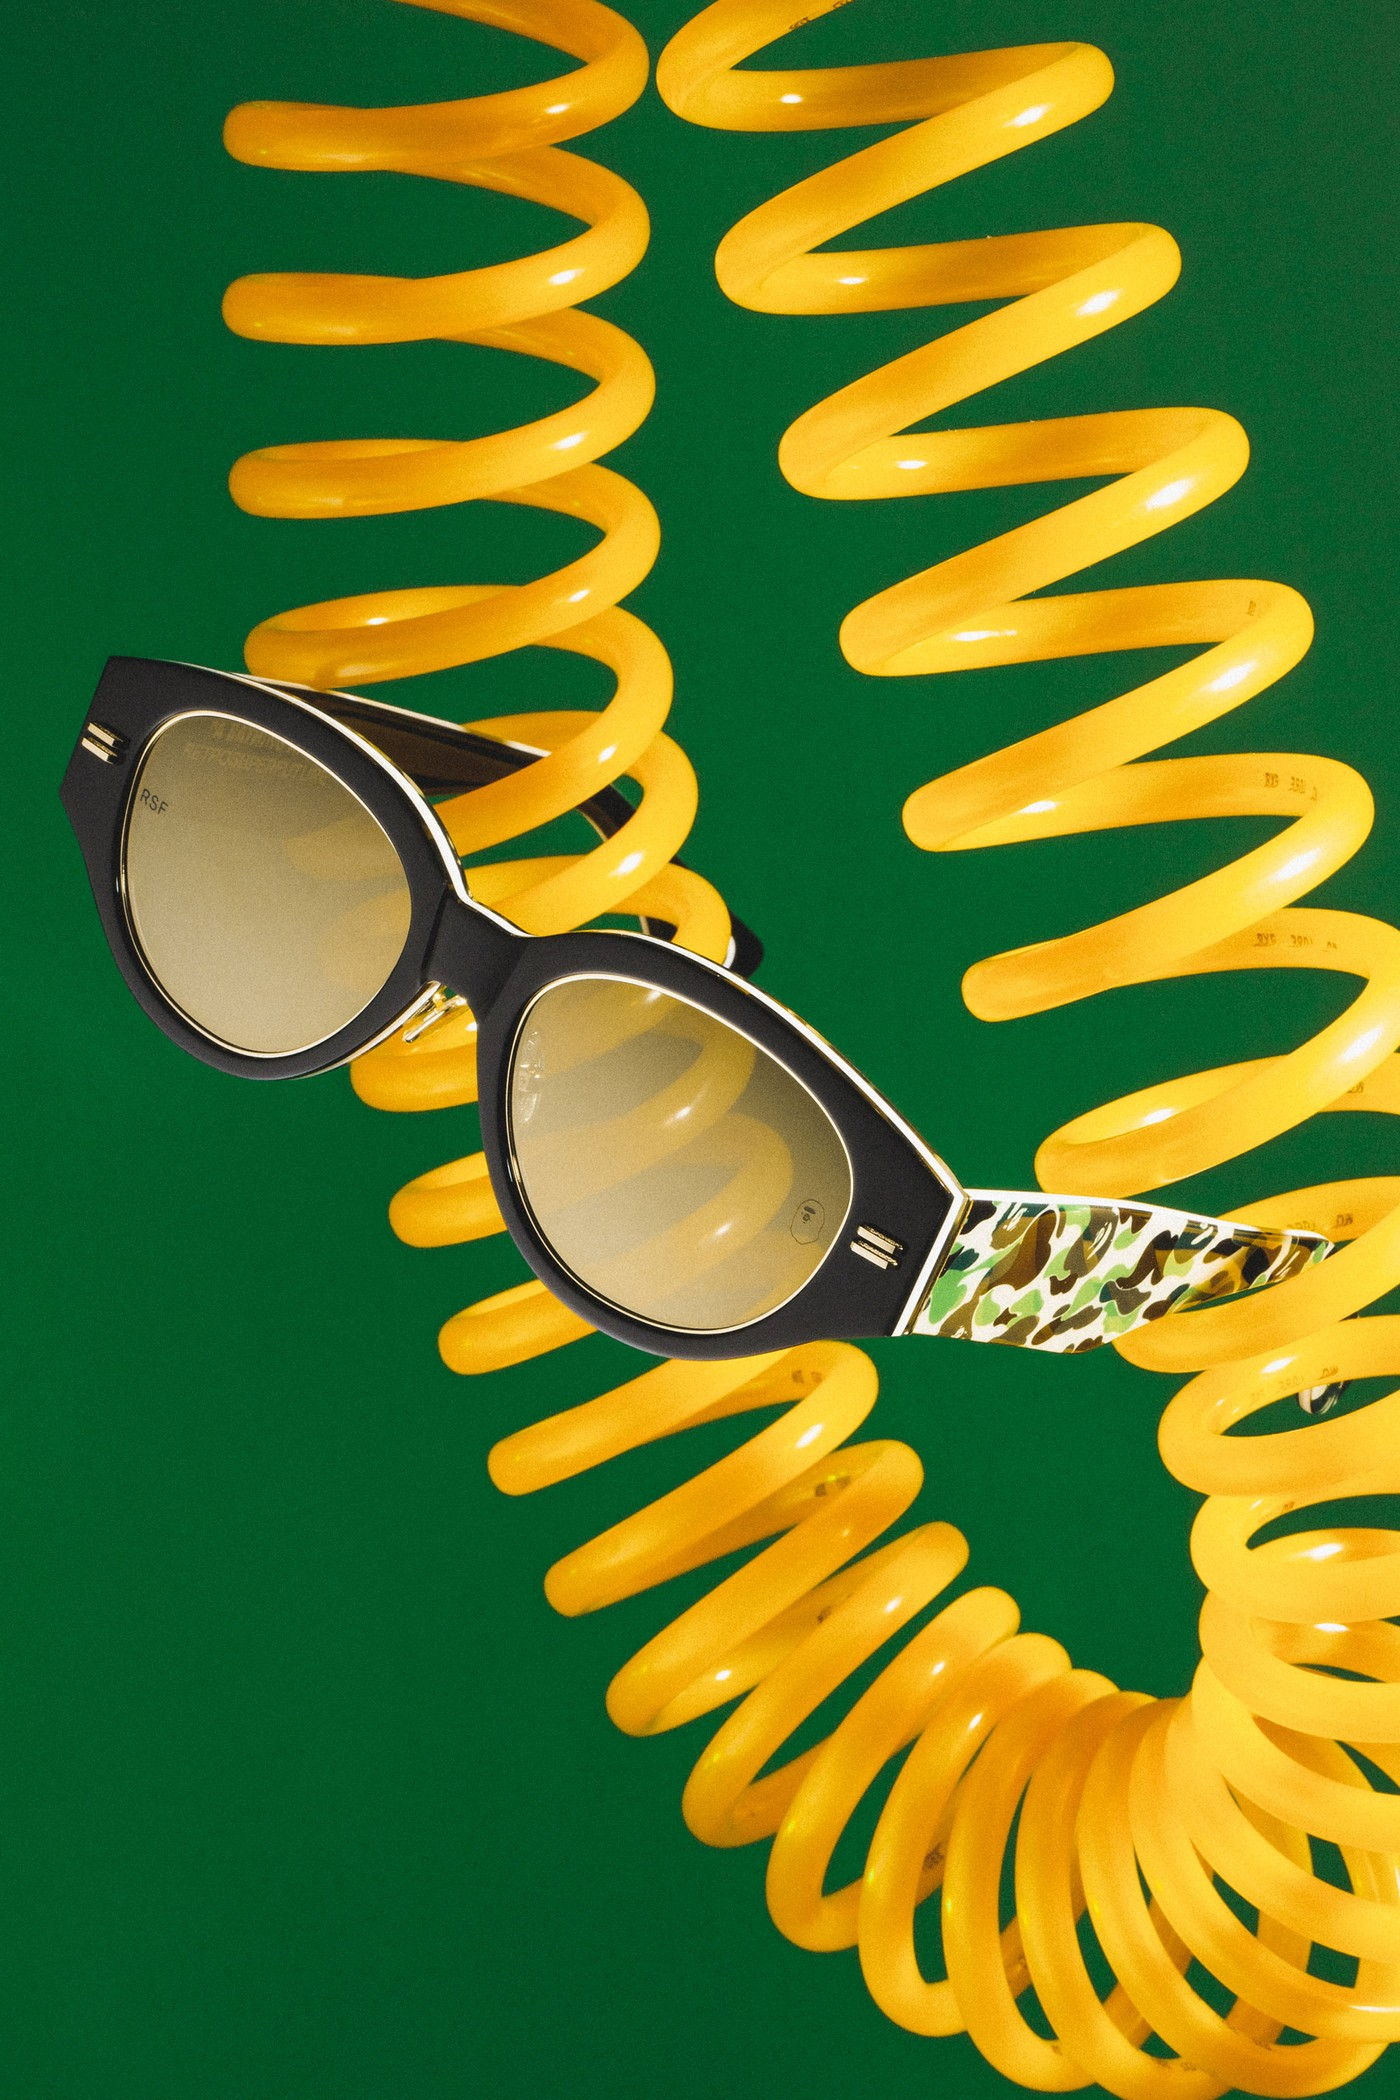 https___hypebeast.com_image_2019_07_bape-retrosuperfuture-eyewear-collection-2019-6.jpg